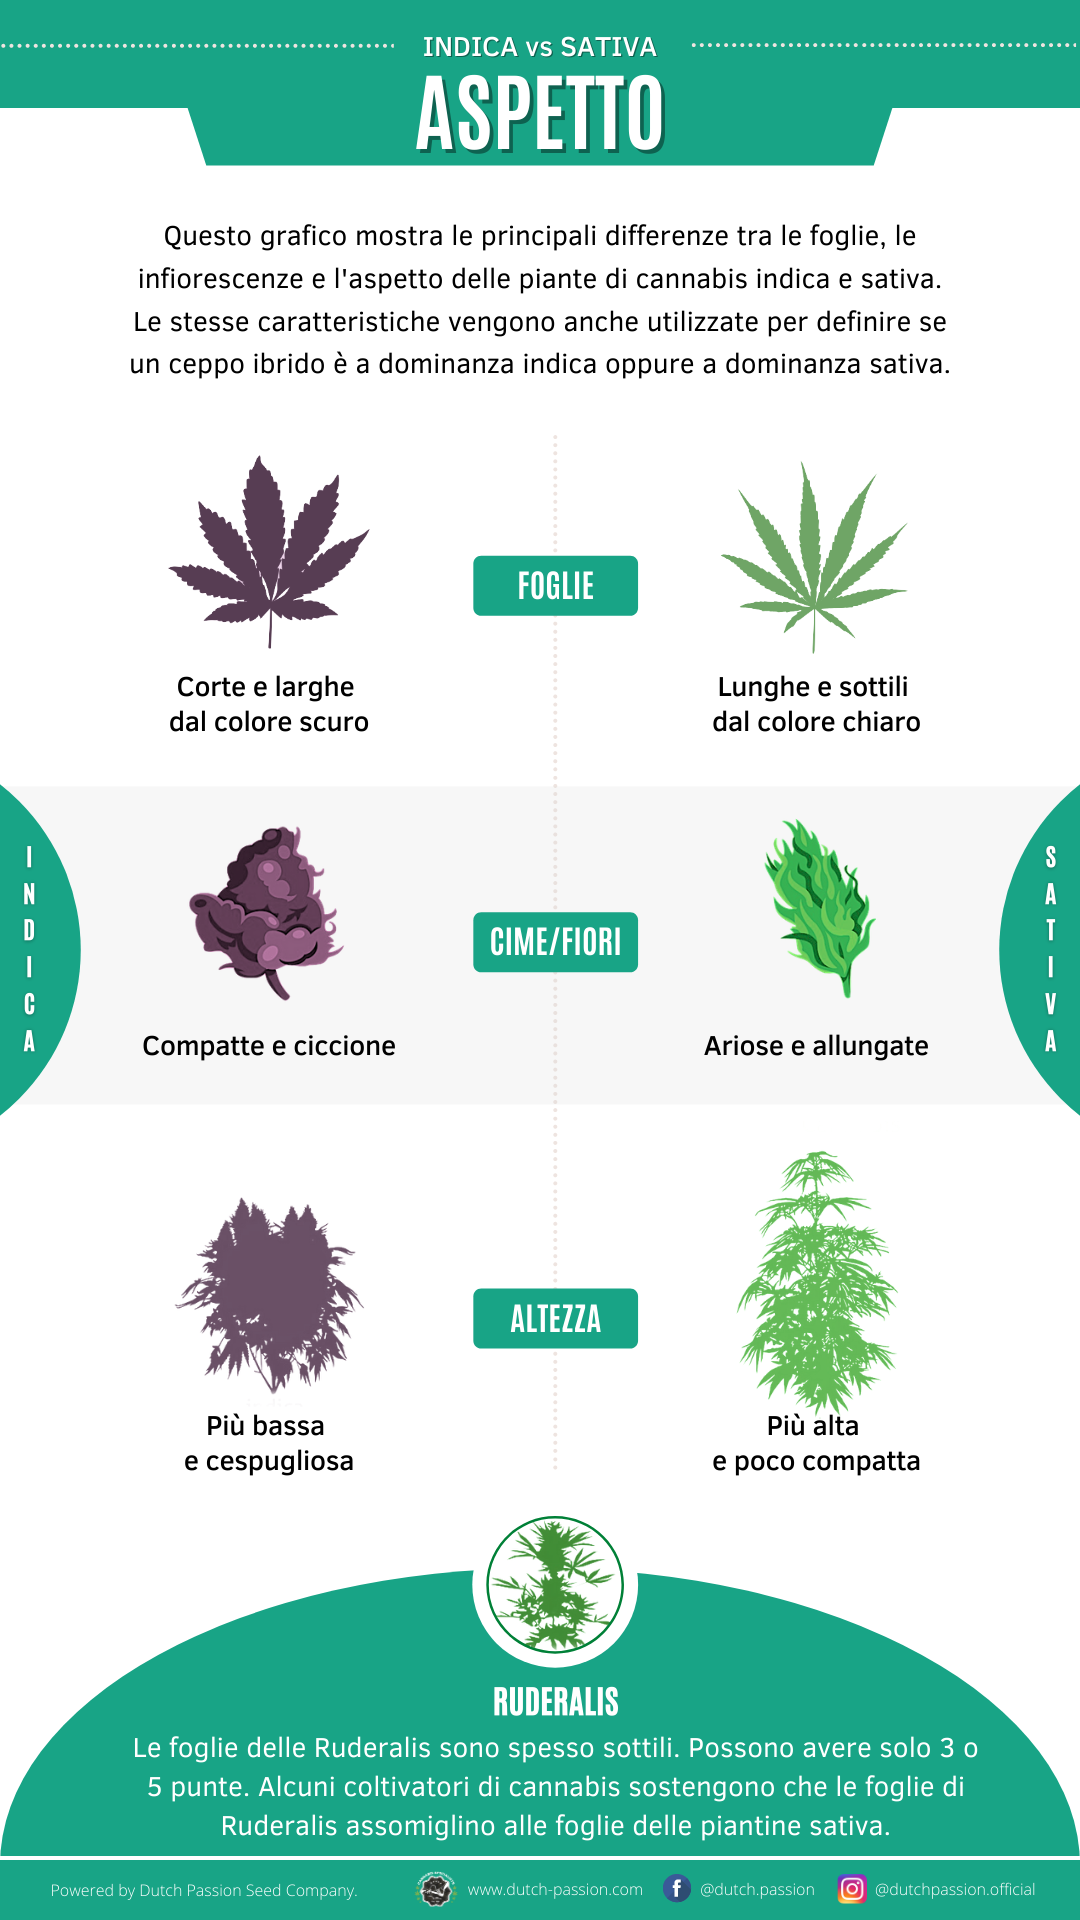 Indica vs Sativa appearance